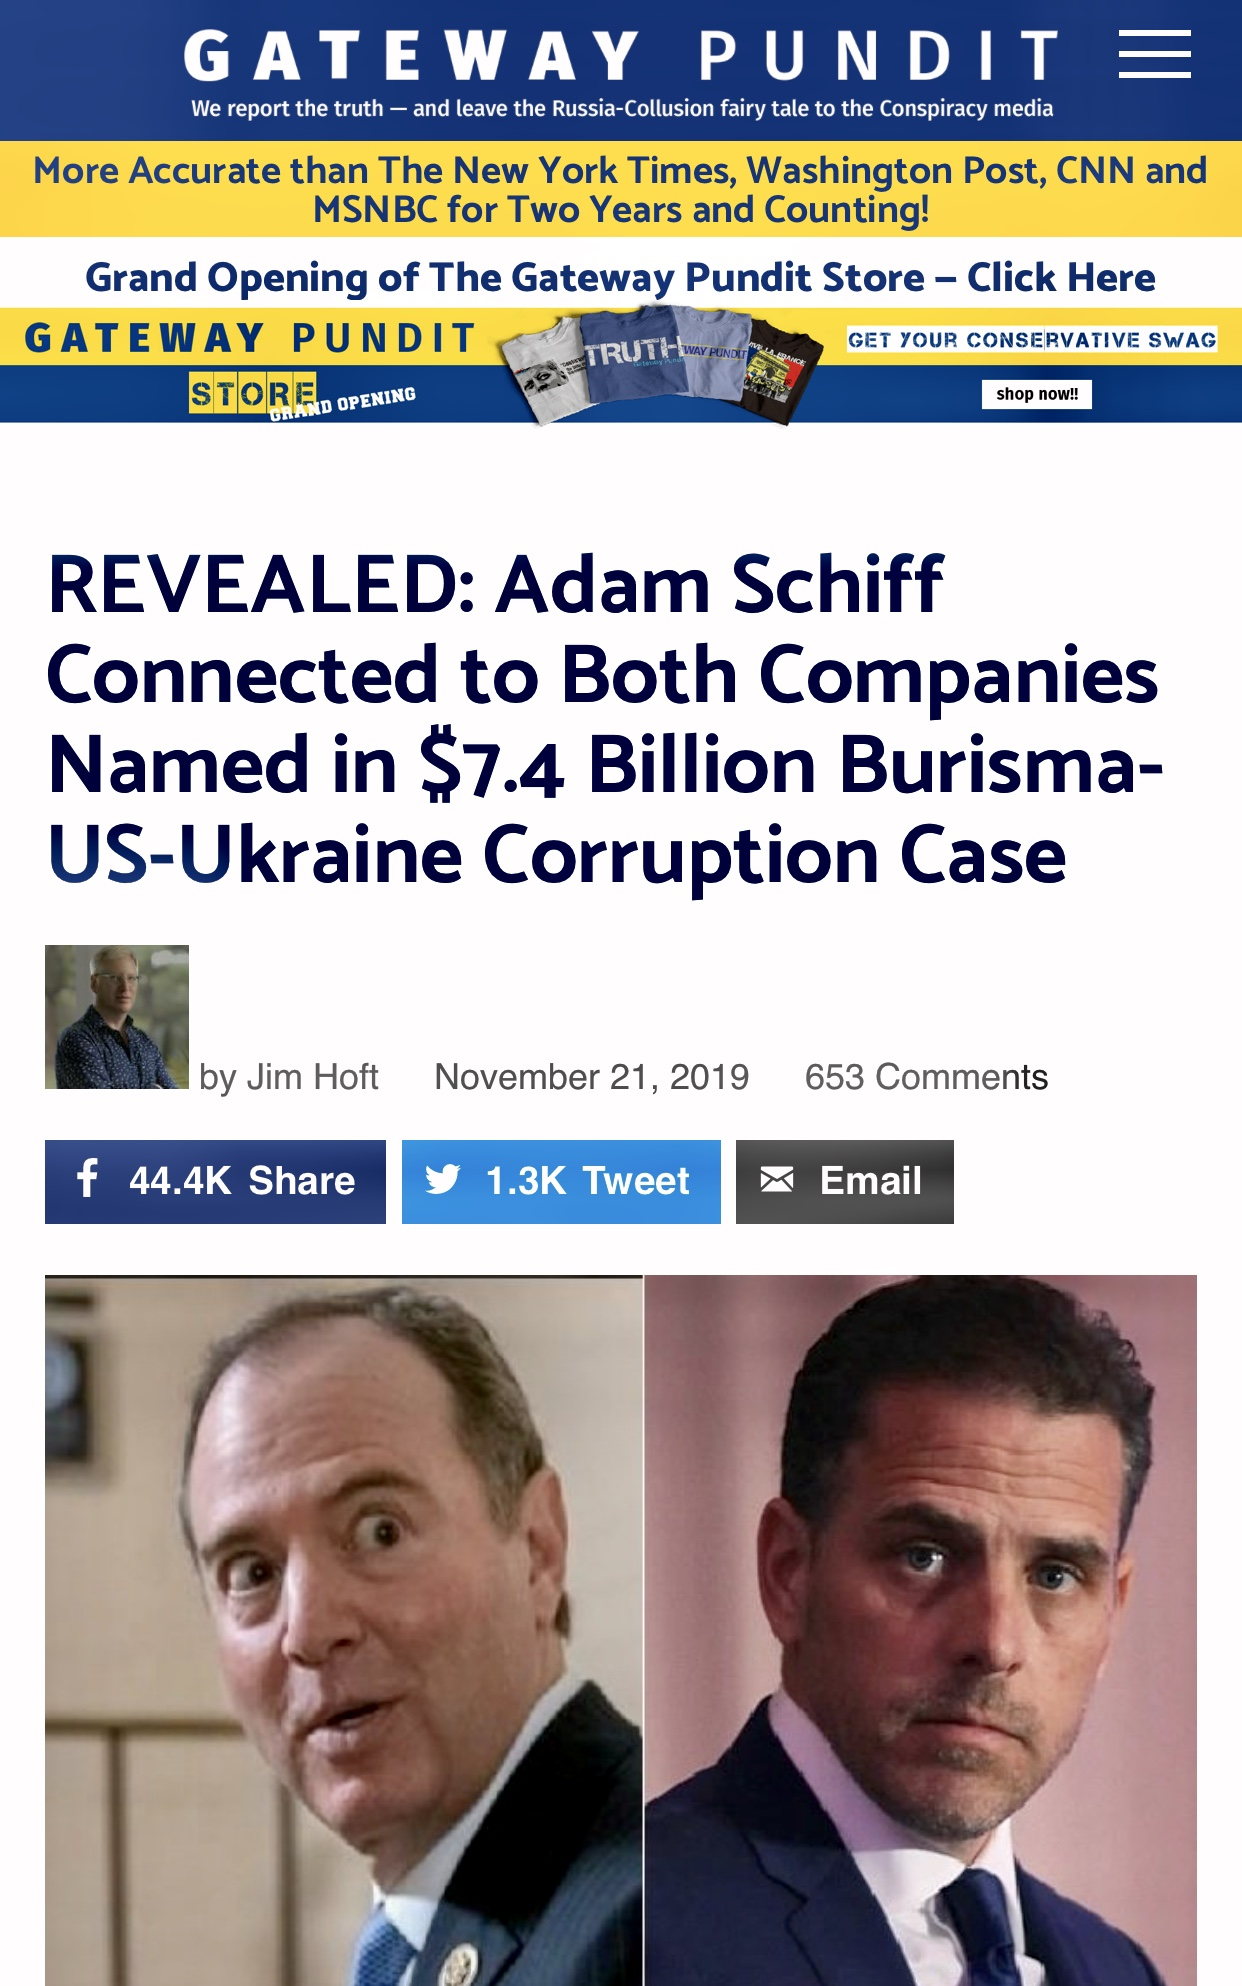 Schiff Connected to Companies Named in $7.4 Billion Burisma-US-Ukraine Corruption